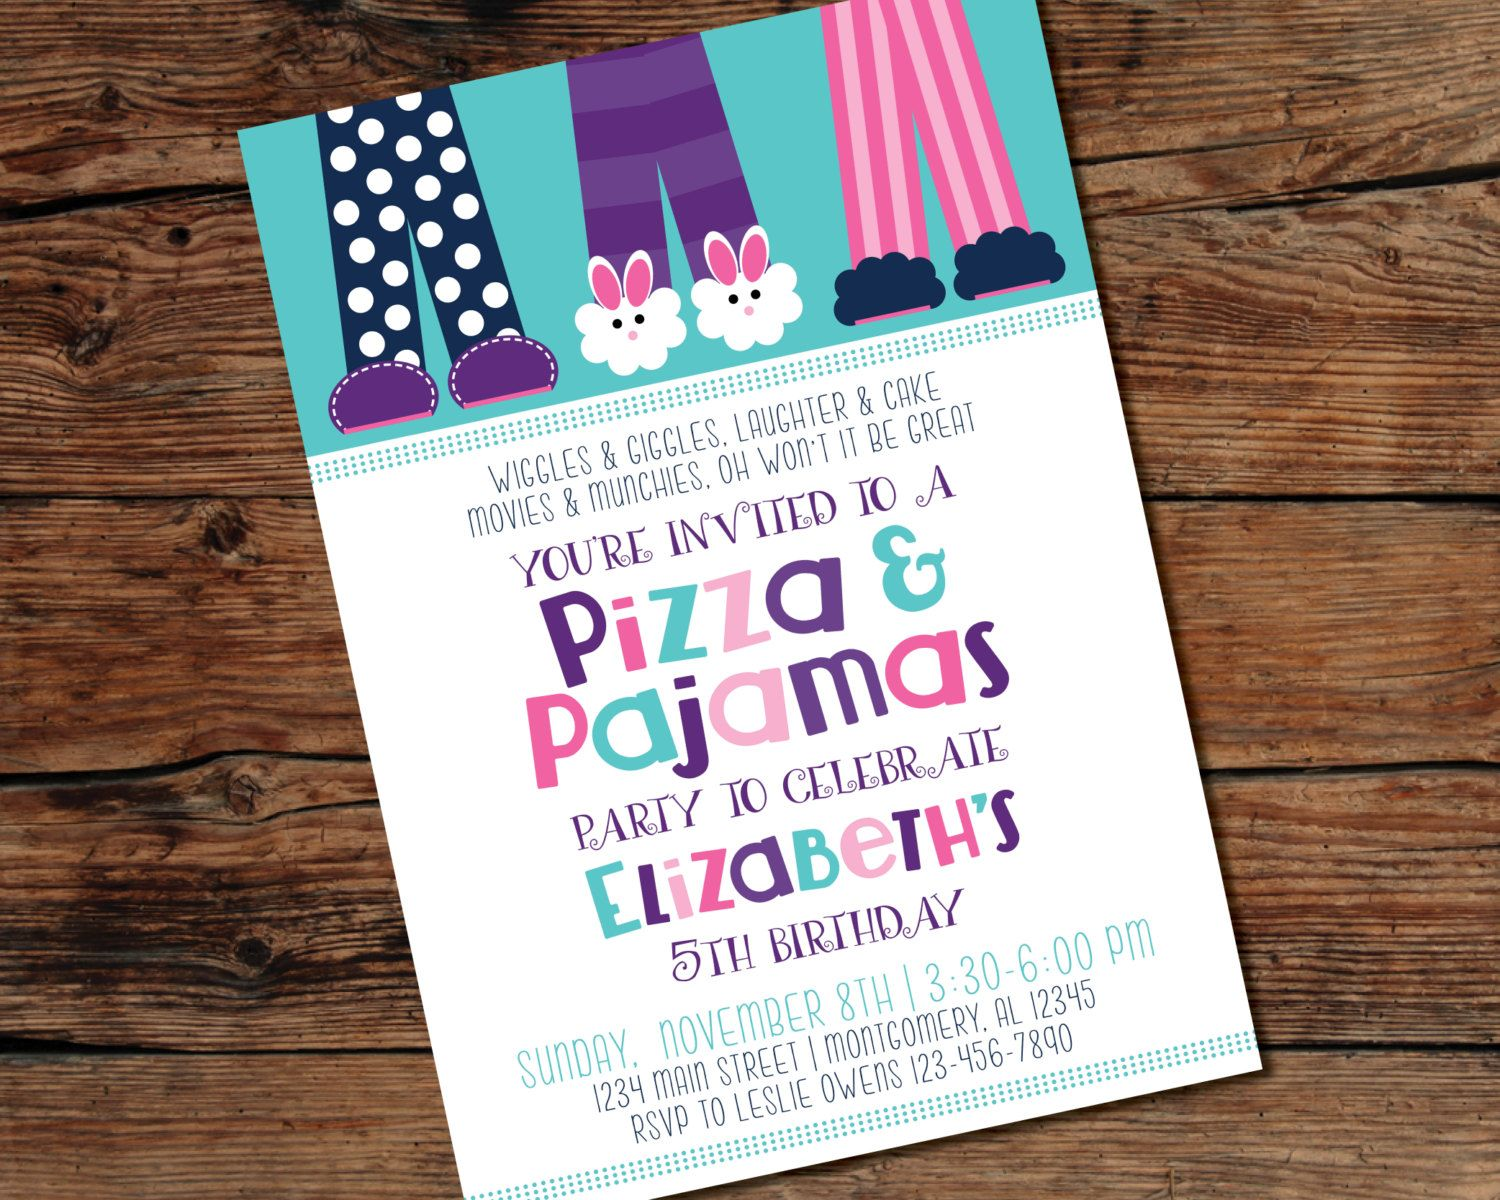 printable pizza and pajamas party invitation digital file